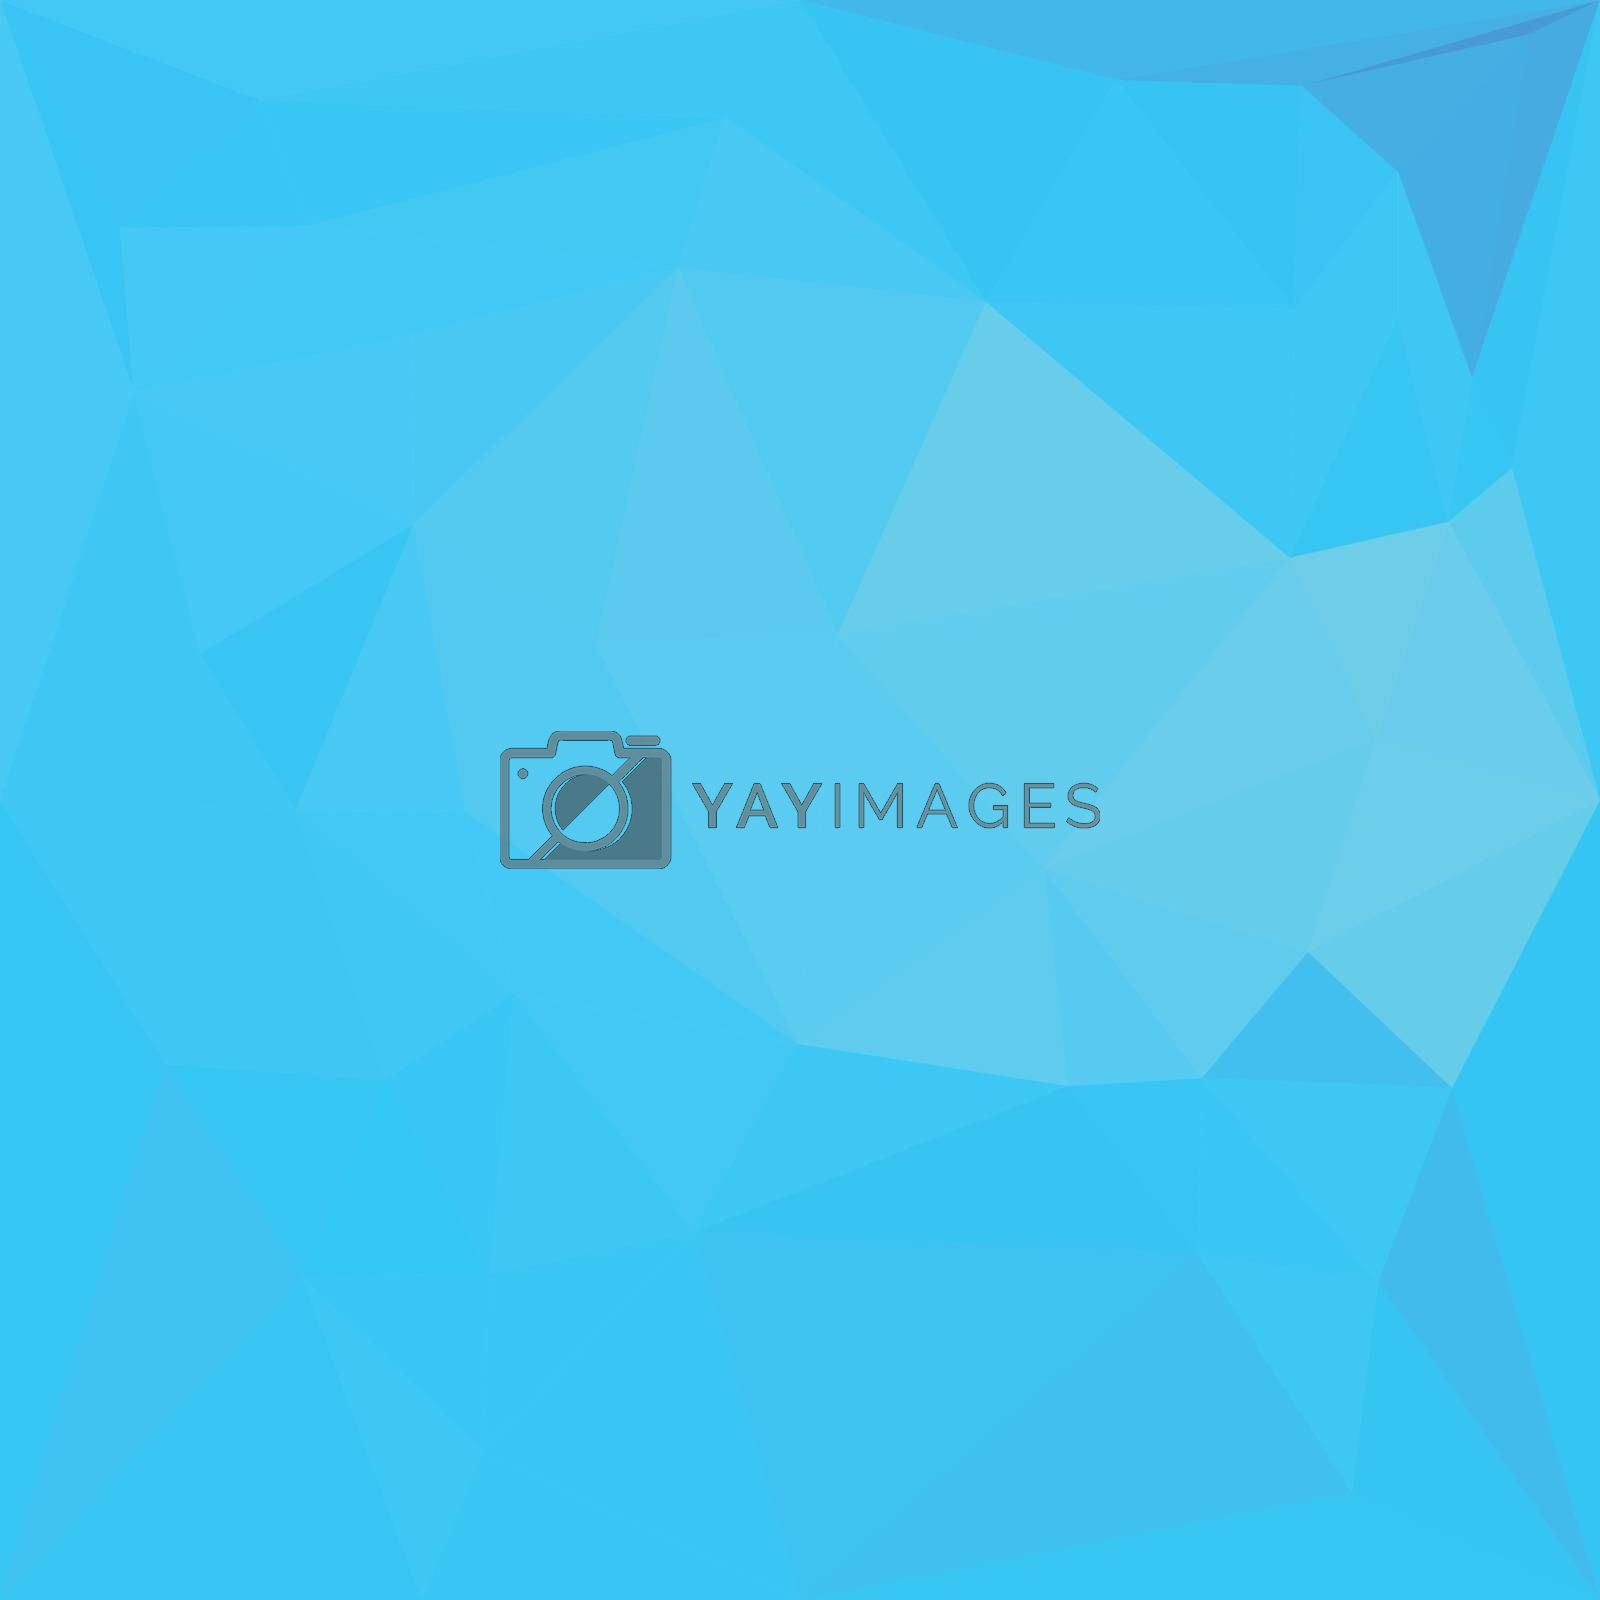 Low polygon style illustration of a dark turquoise abstract geometric background.